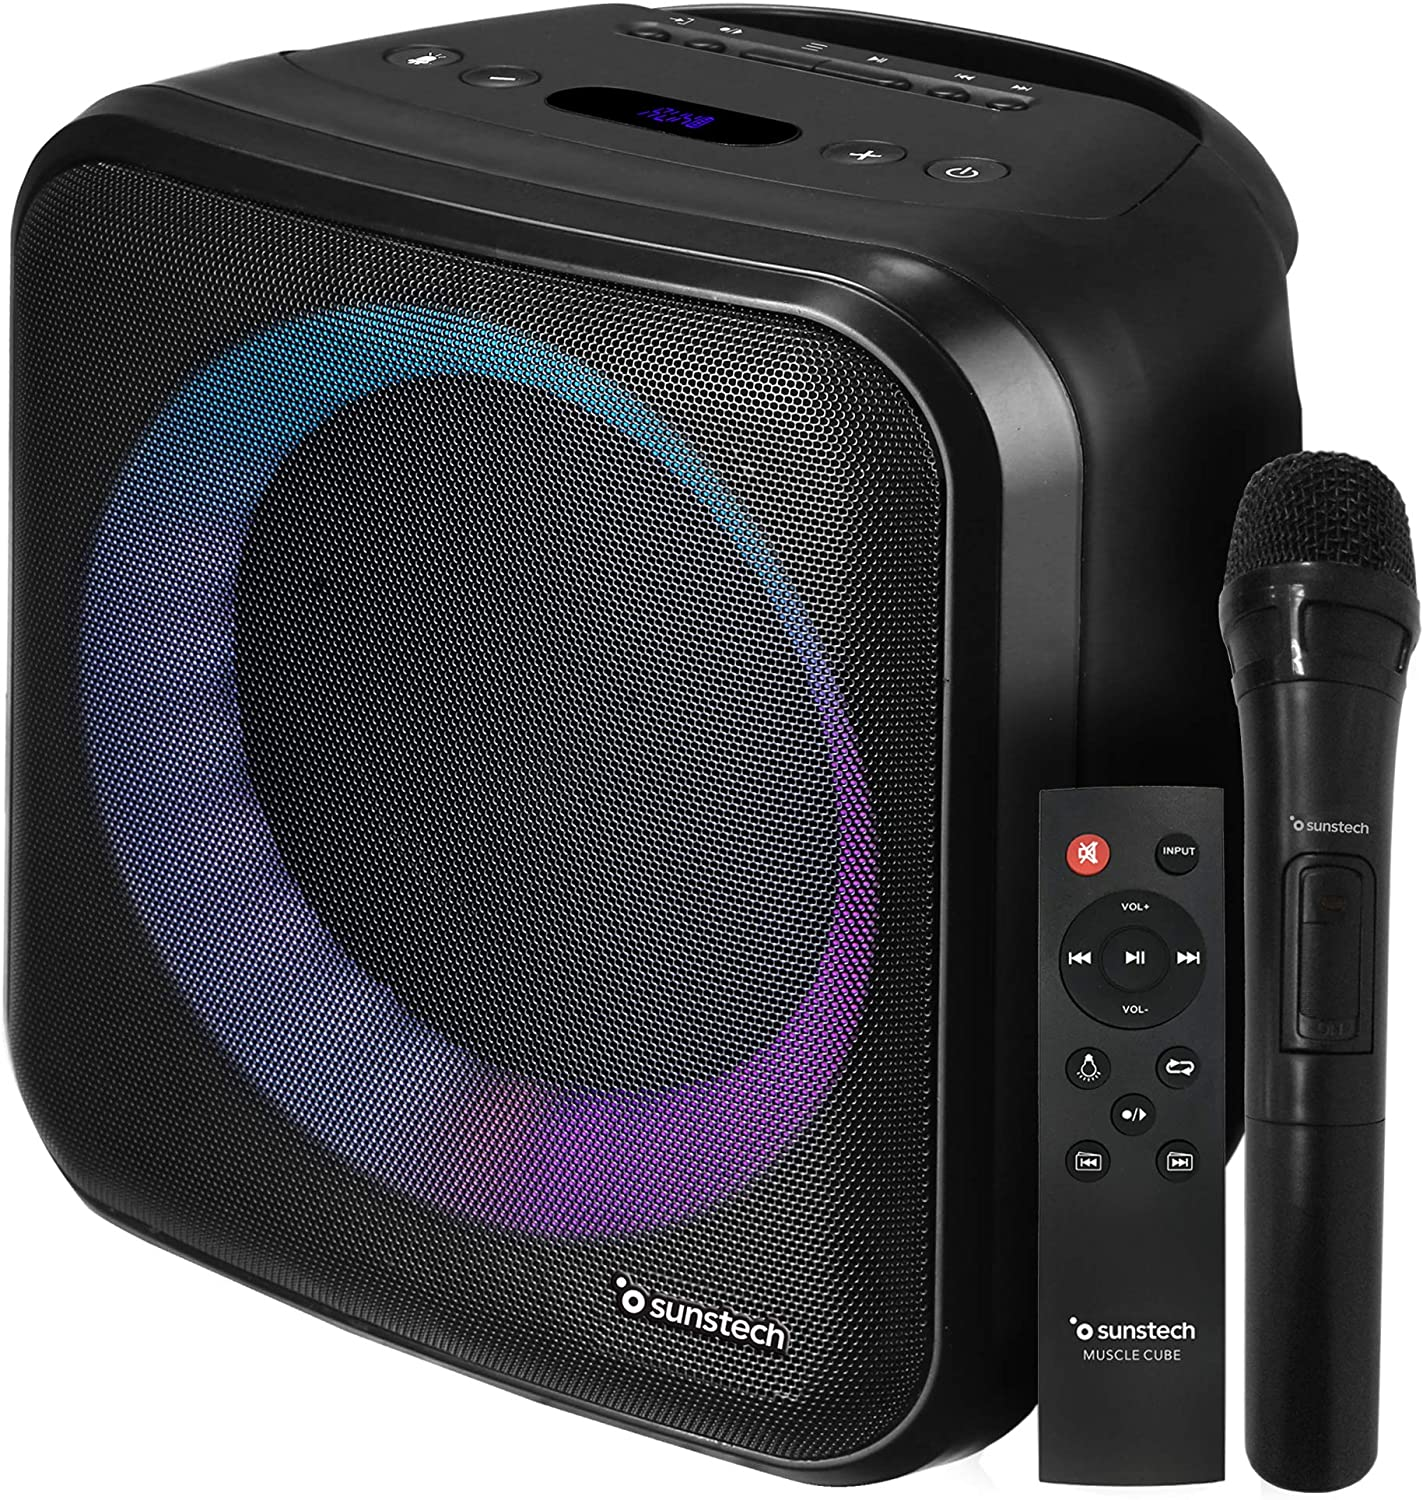 SUNSTECH Muscle Cube. Altavoz 20 W, iluminación LED, Bluetooth 5.0, Radio FM, USB, Micro SD, aux-in, aux-out. Conexiones Guitarra y micrófono. Mando a Distancia y micrófono incluidos. Color Negro